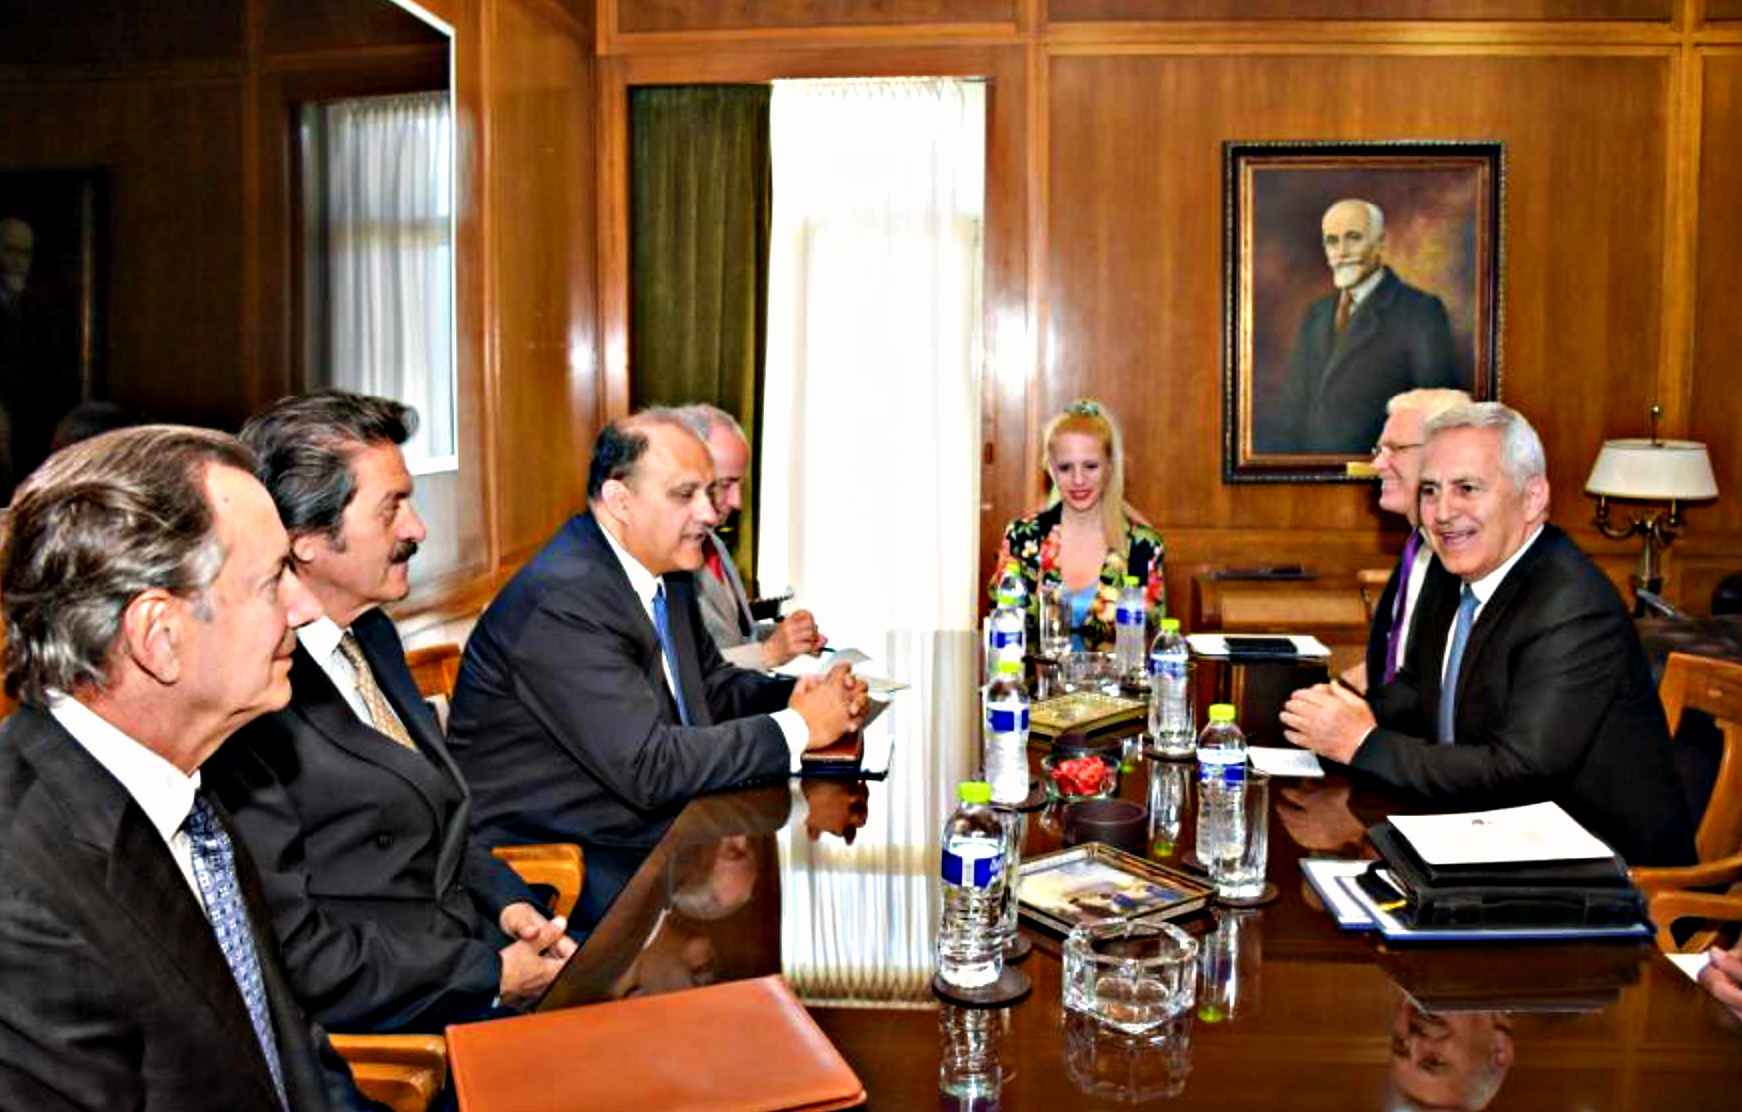 Meeting with Minister of Defense Evangelos Apostolakis